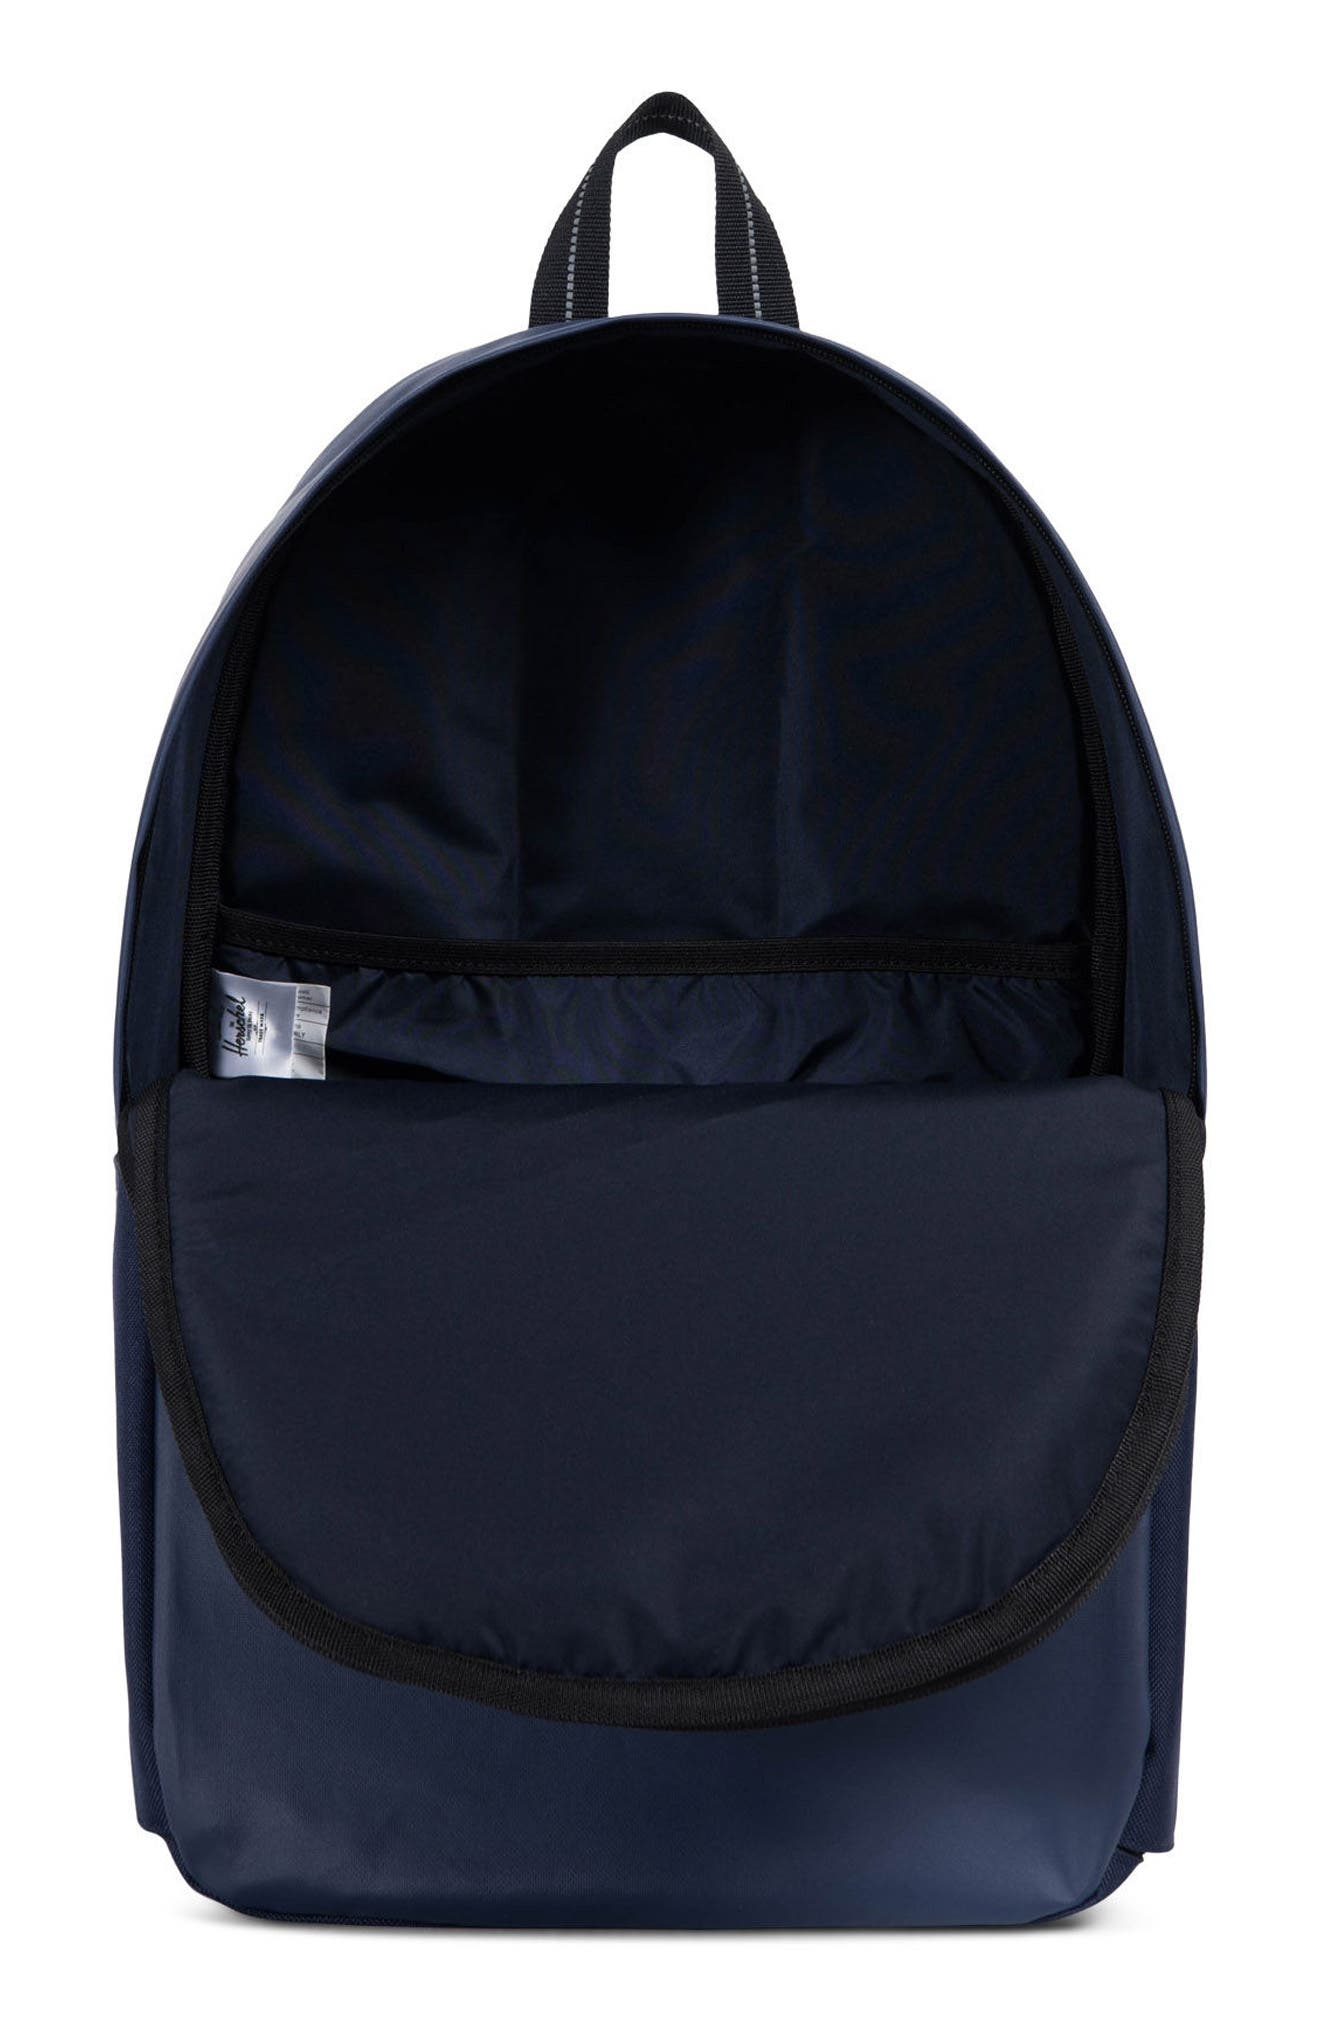 Parker Studio Collection Backpack,                             Alternate thumbnail 7, color,